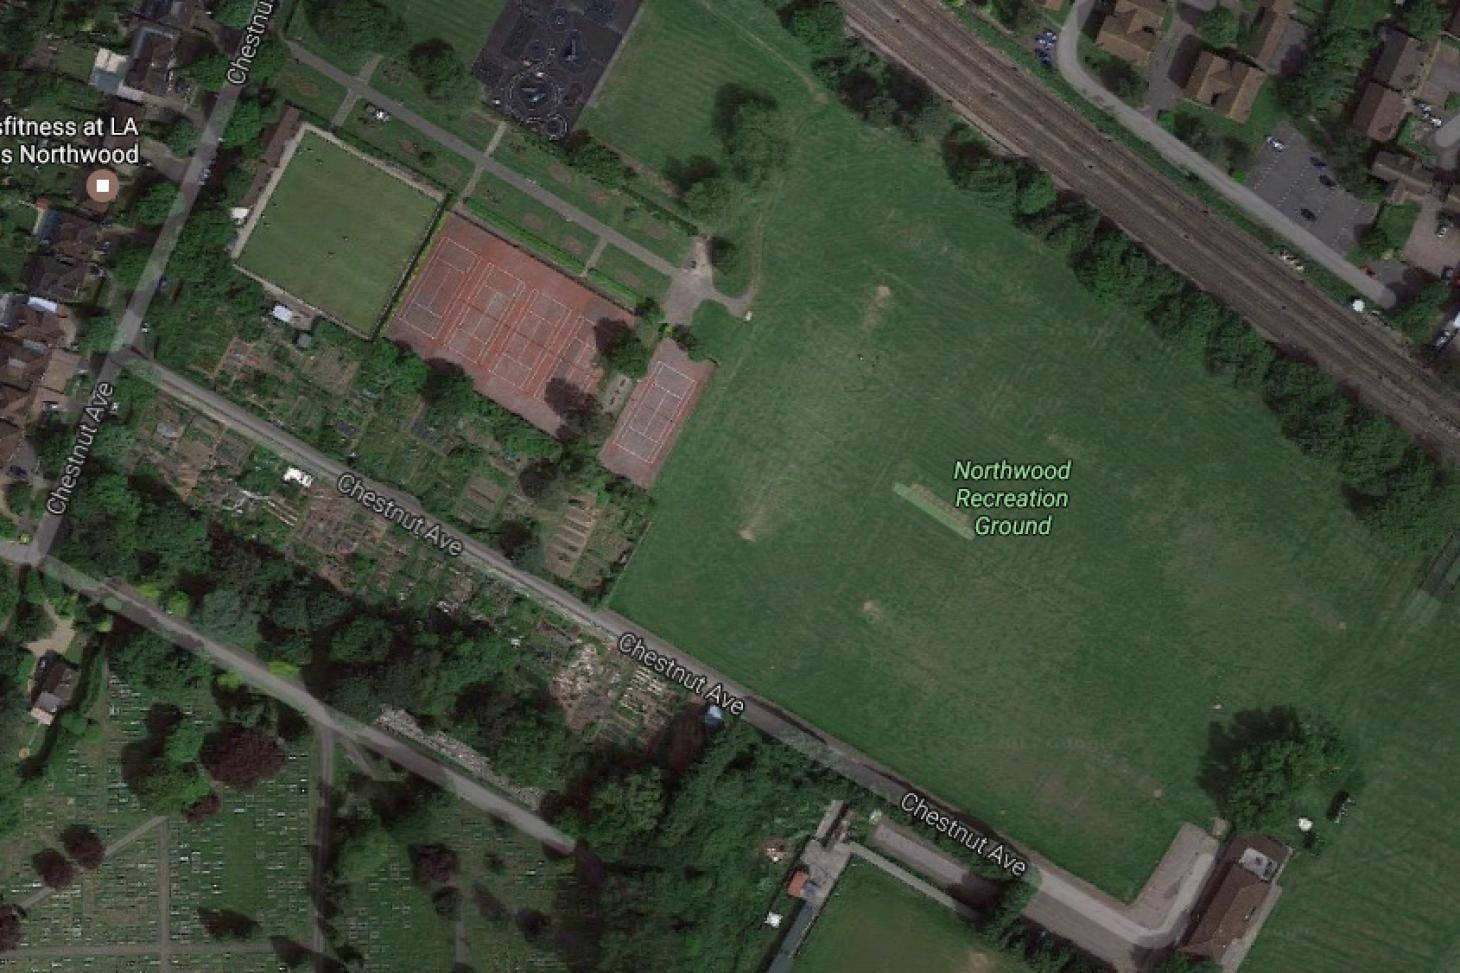 Northwood Recreation Ground Outdoor | Clay tennis court